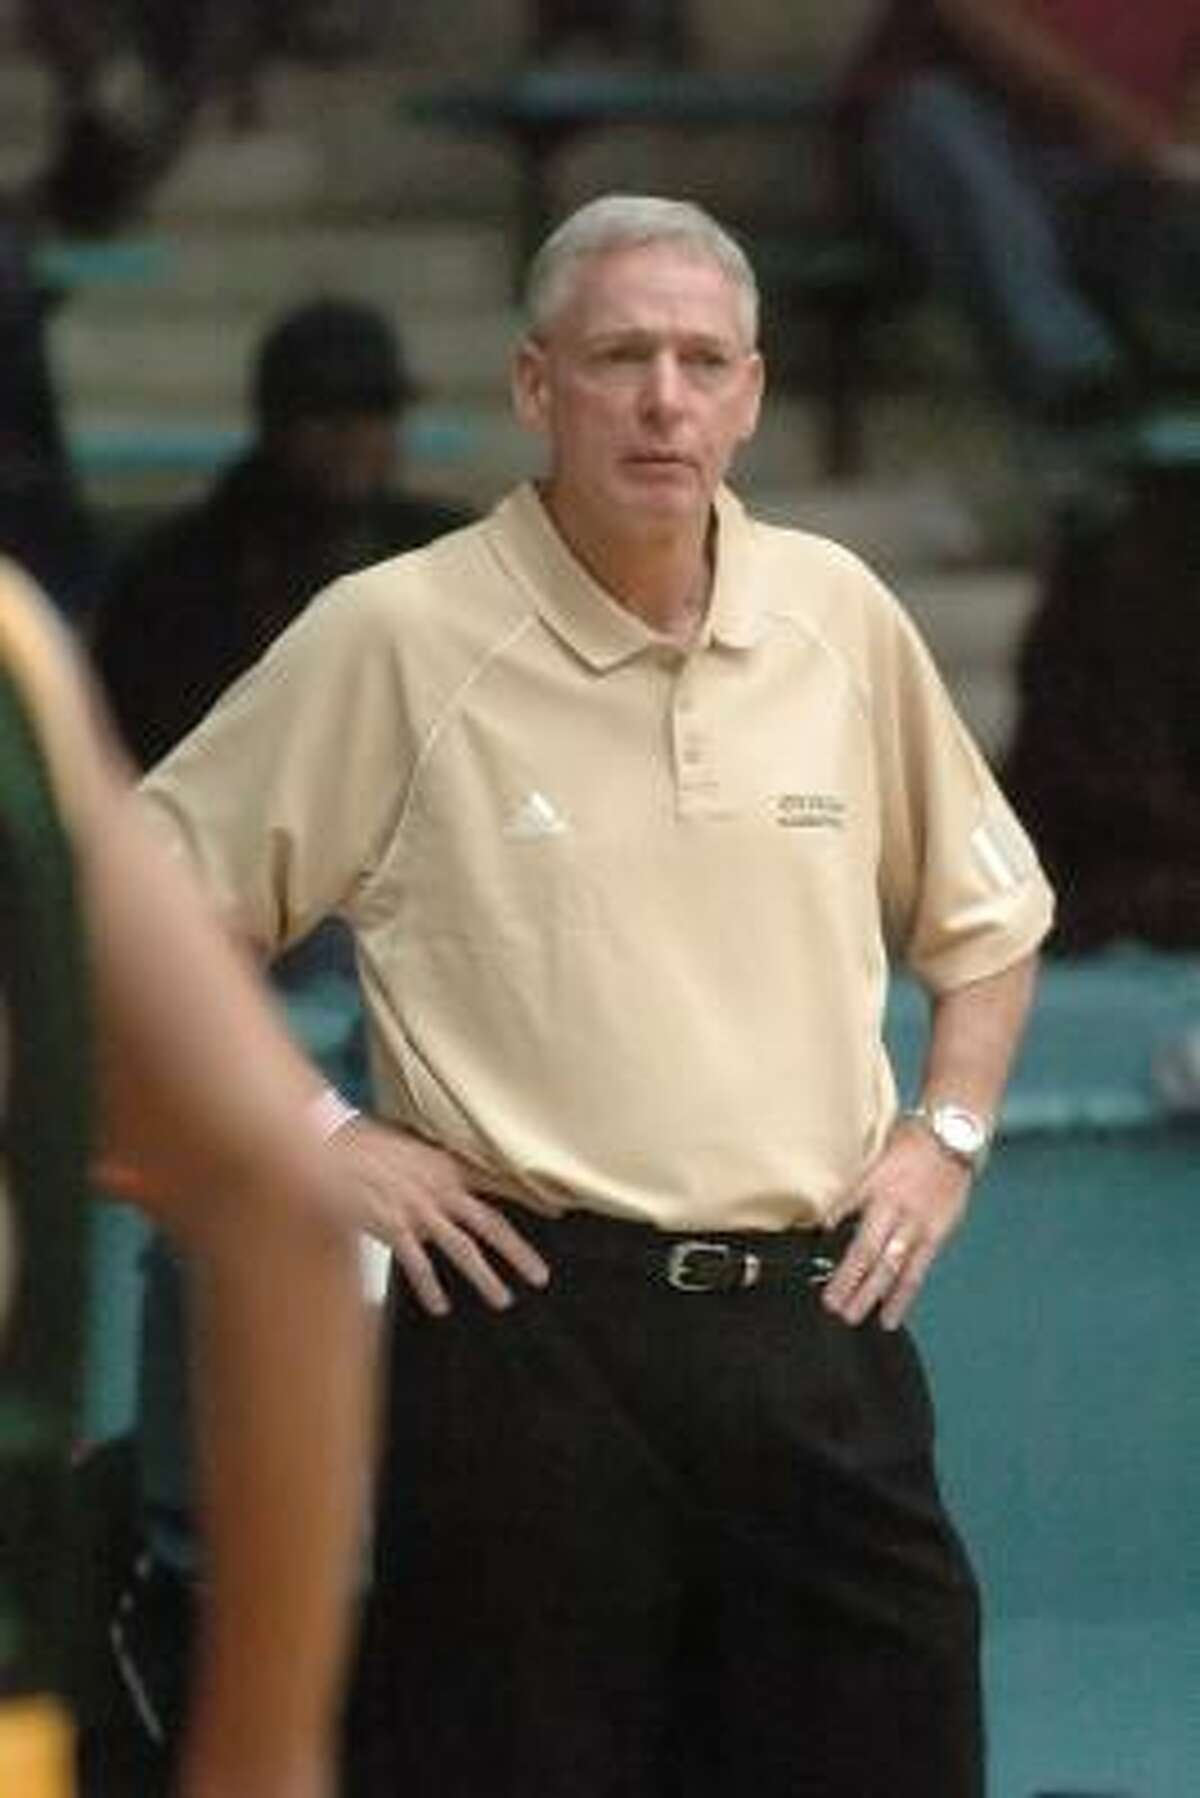 Draudt (father/son) Jim Draudt, boys head coach at Cypress Falls, is the father of Cy Woods boys head coach Chris.